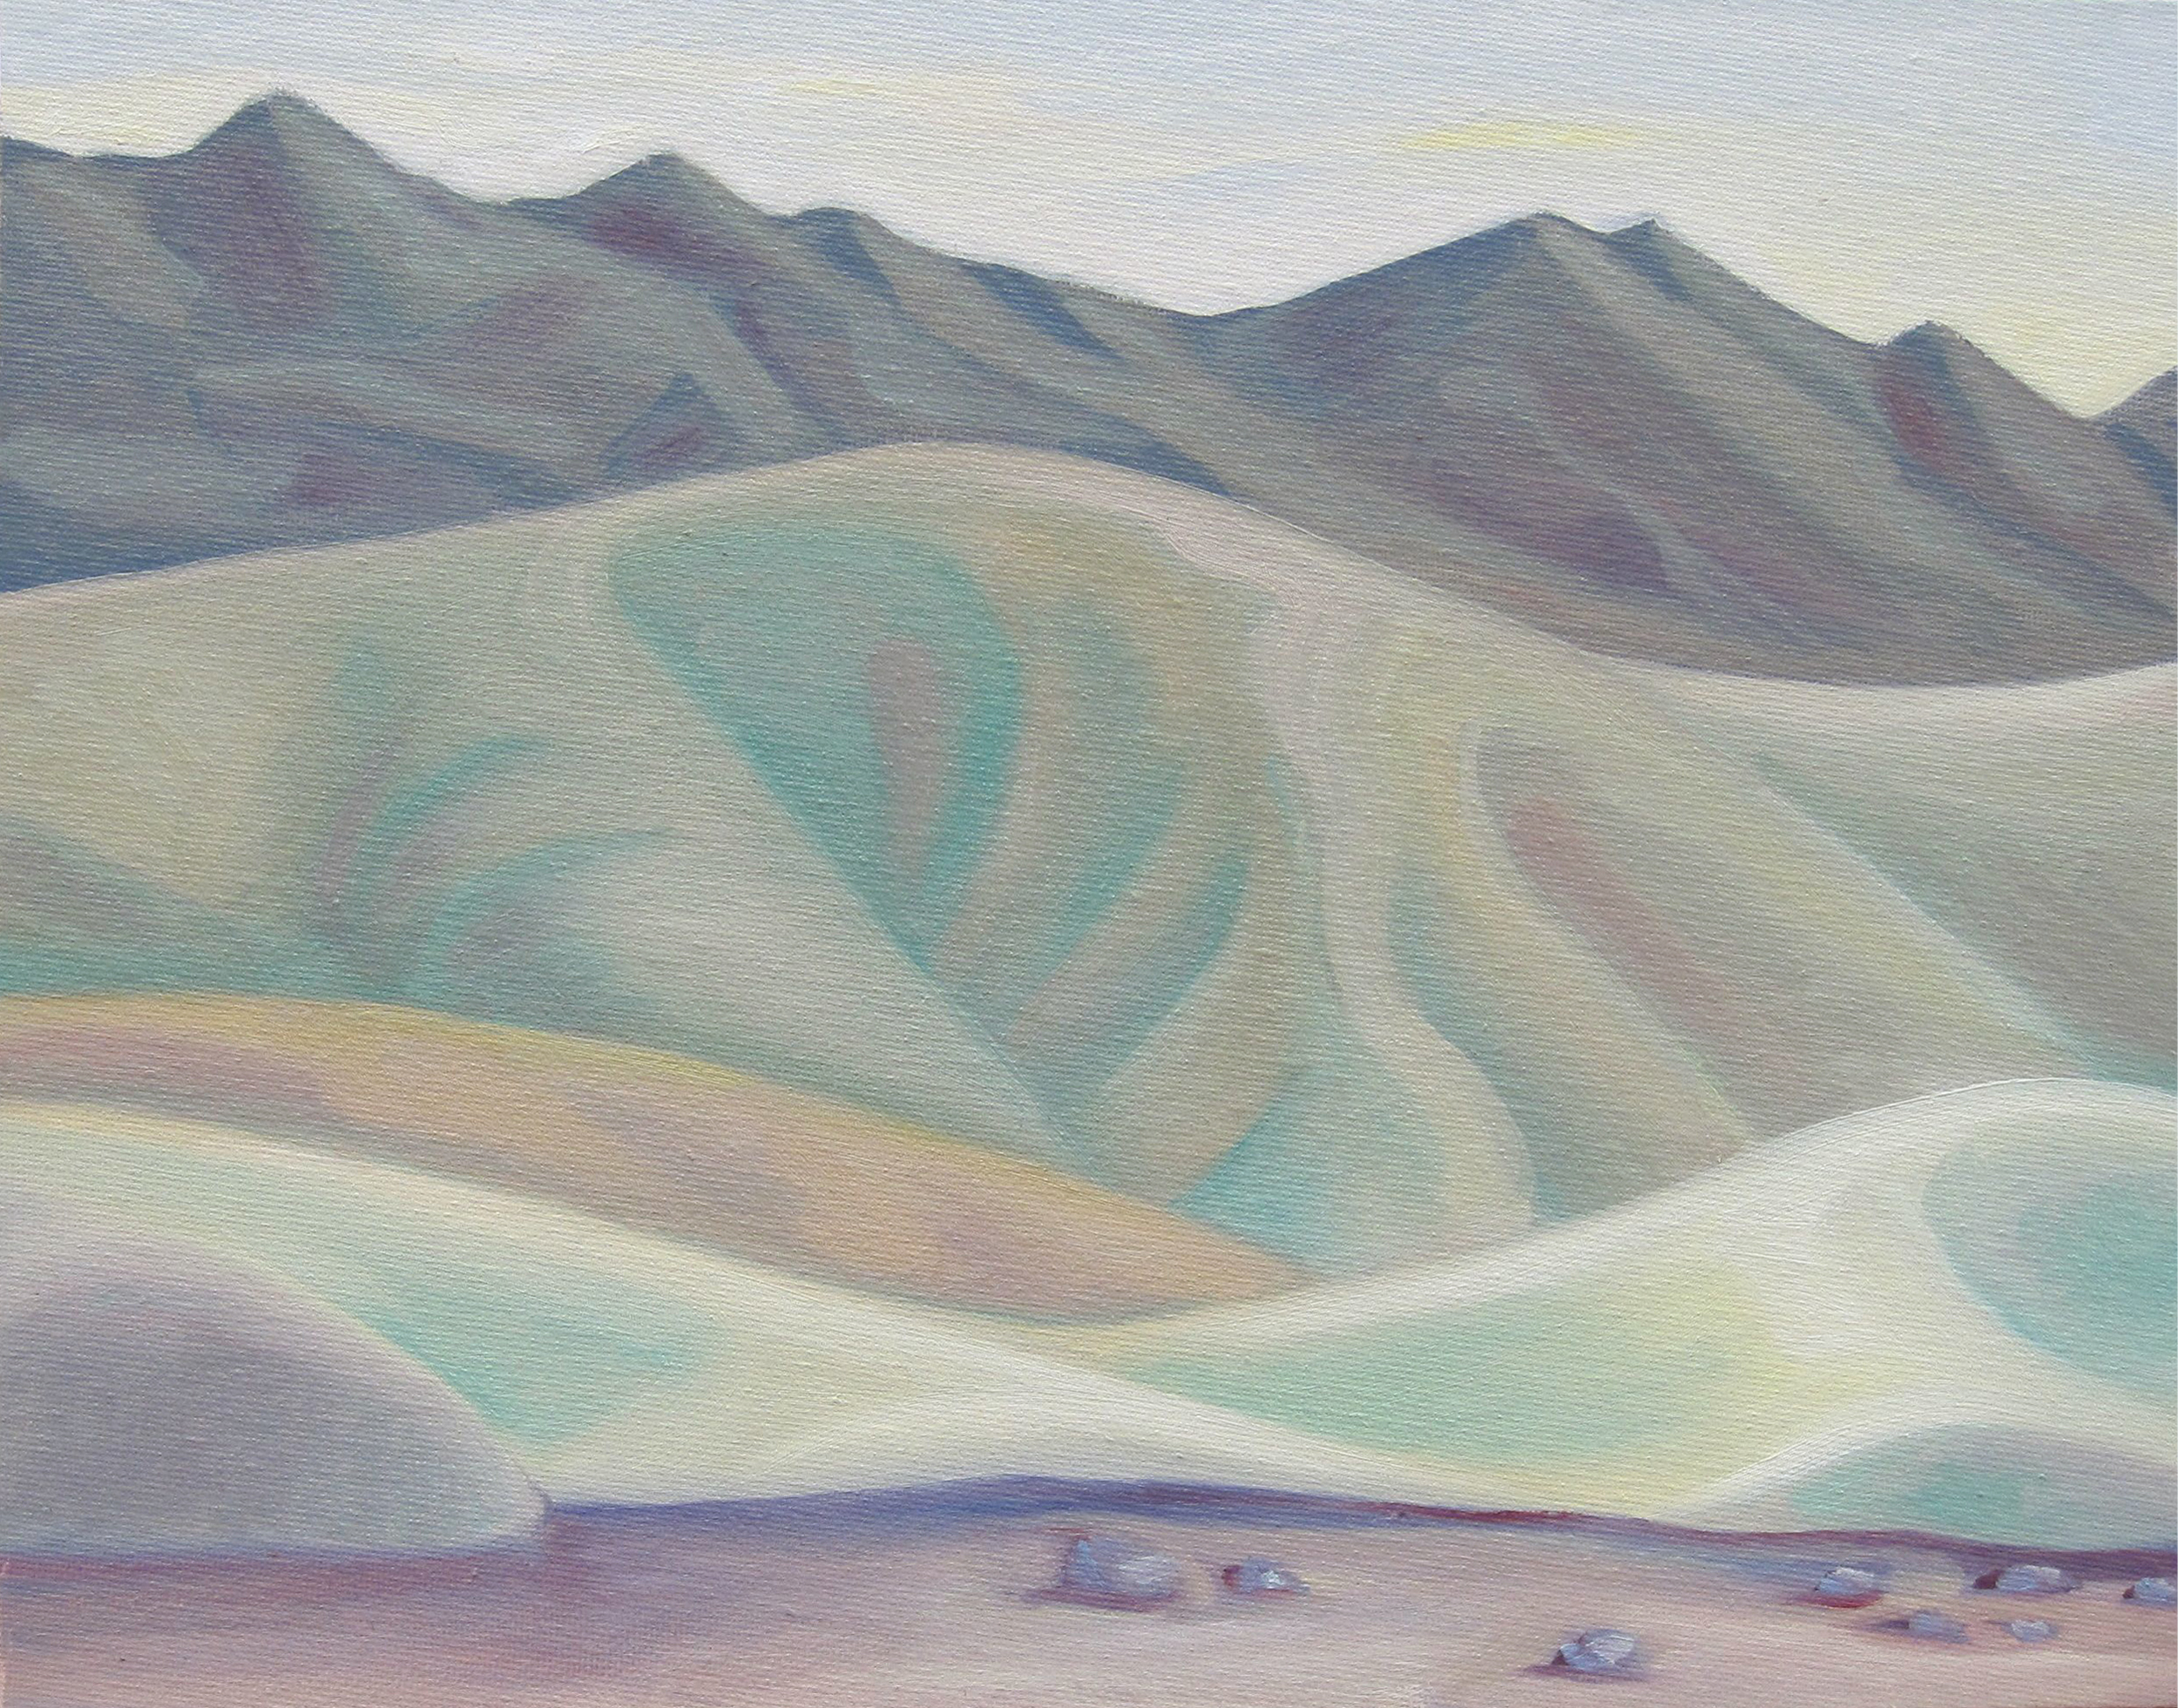 deathvalley_pleinair2012.jpg